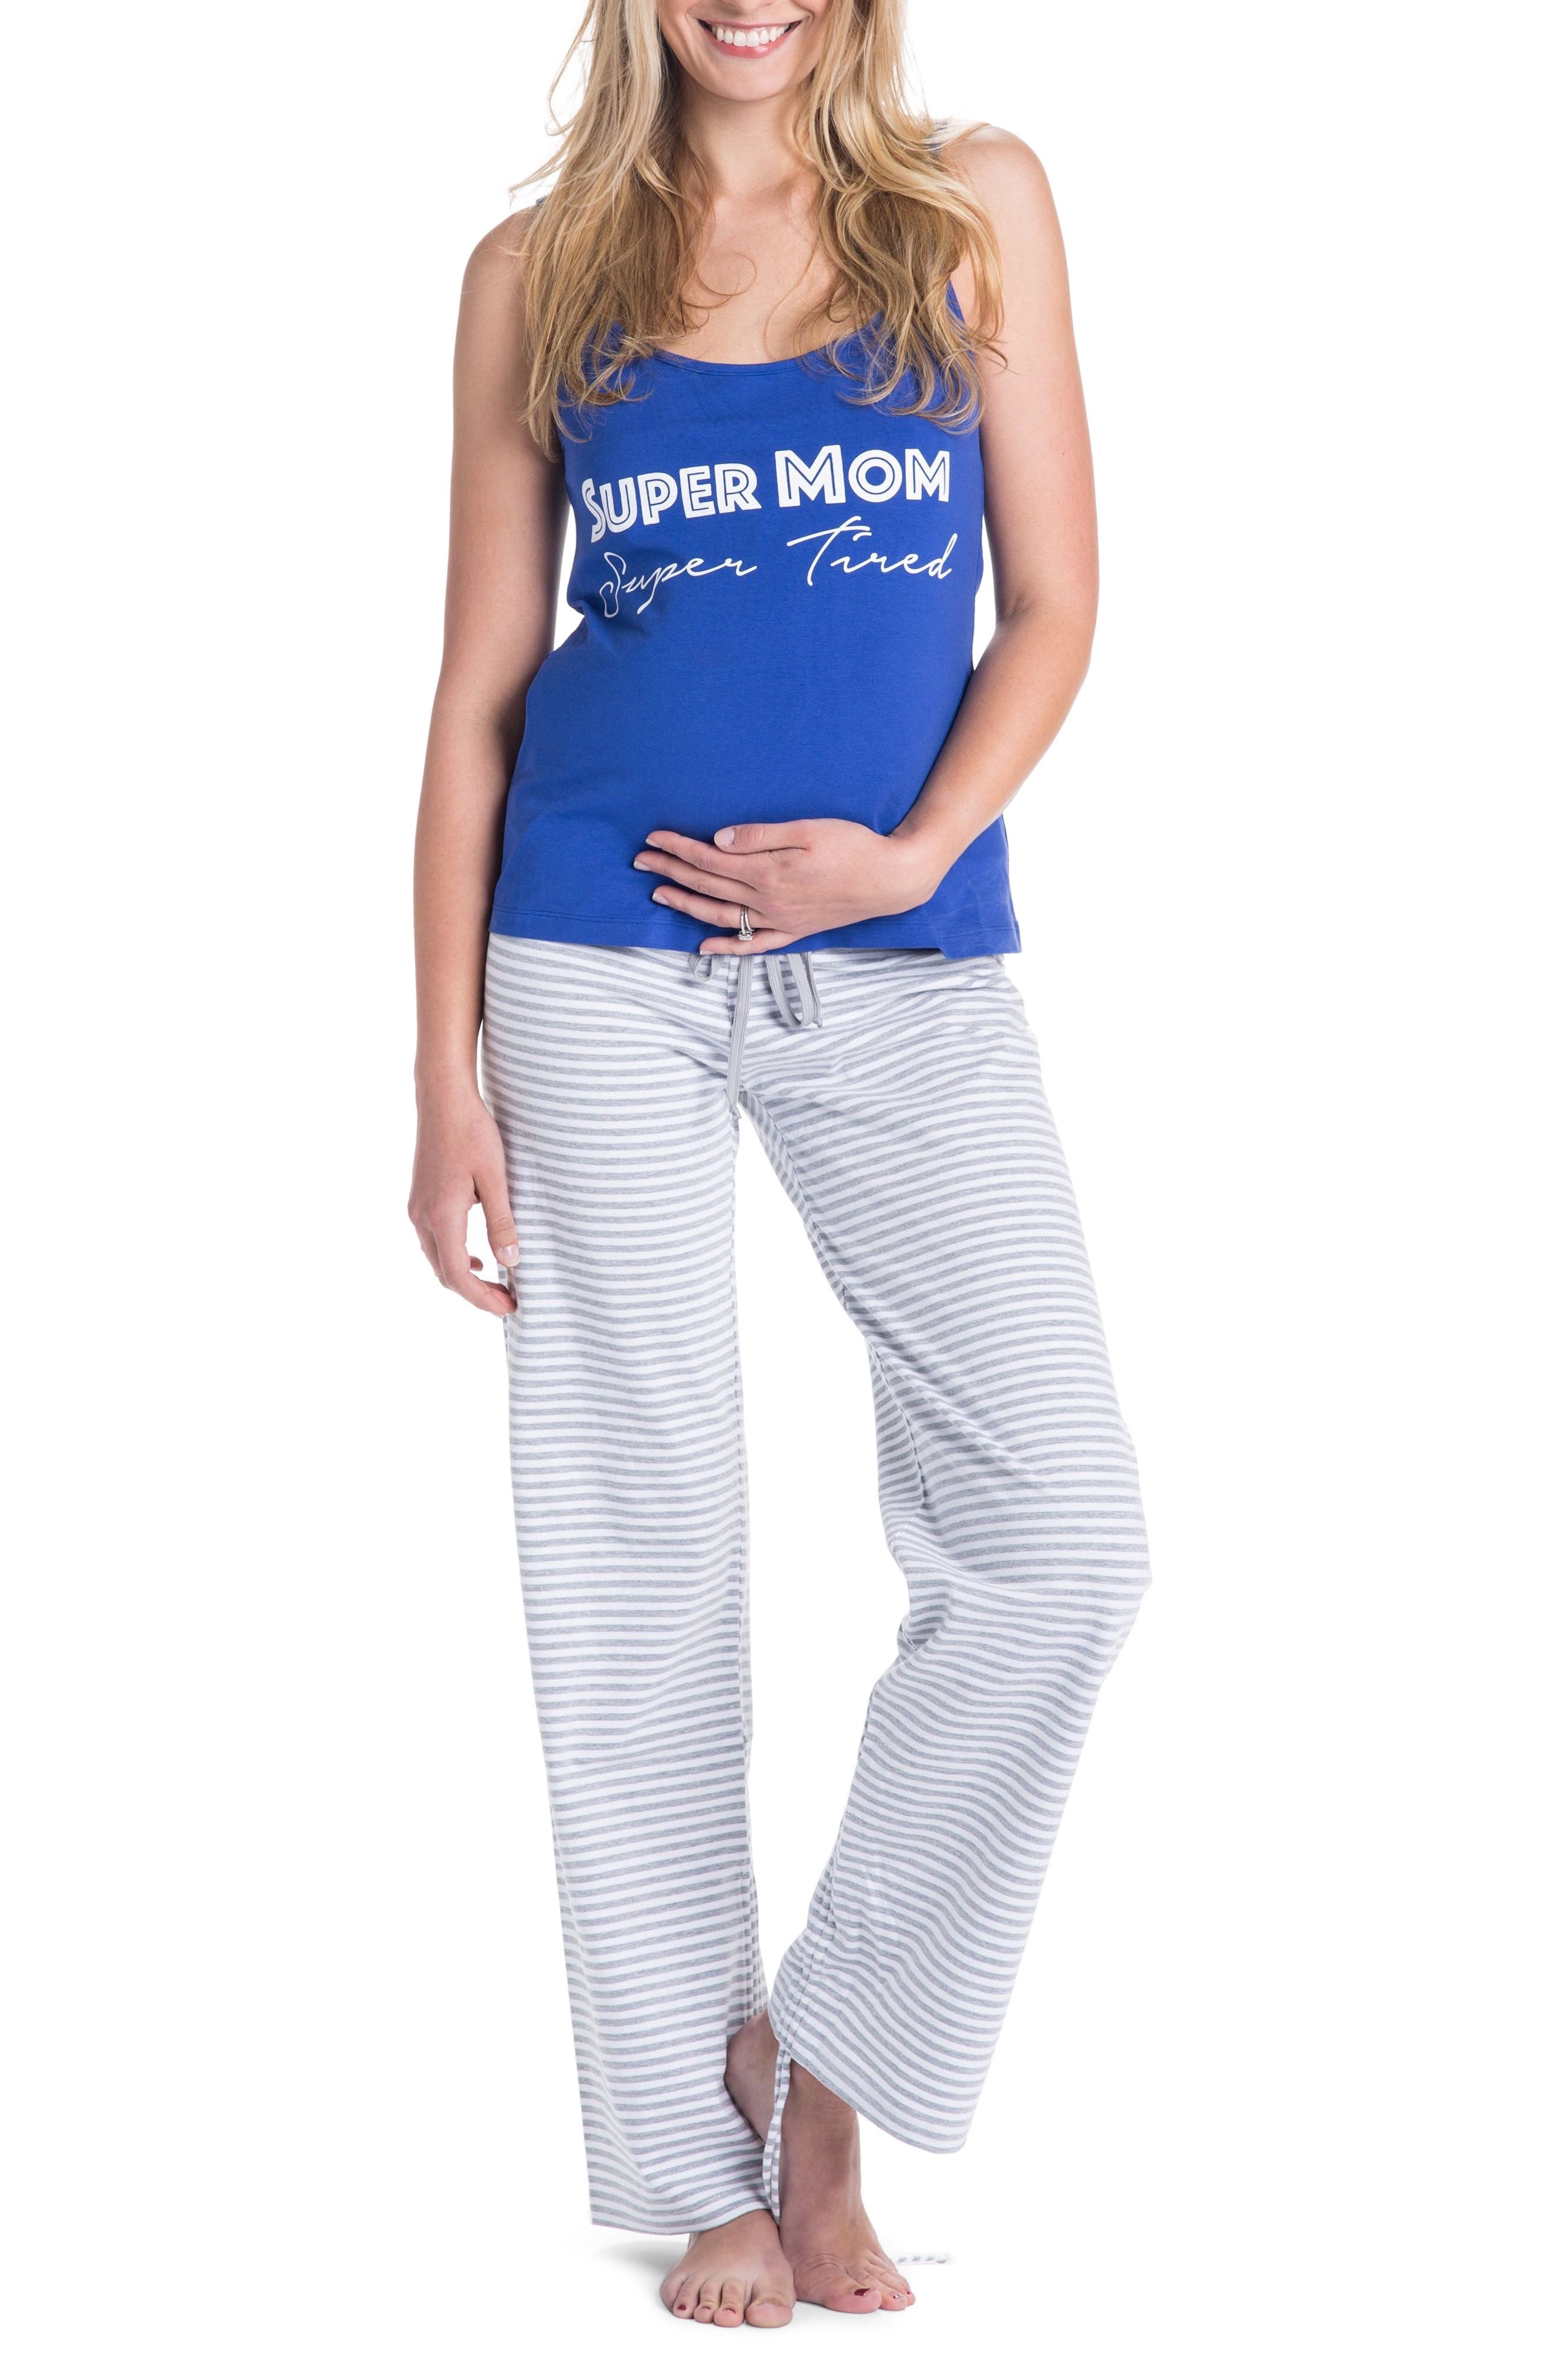 Trudy Super Mom Maternity/Nursing Pajamas,                             Main thumbnail 1, color,                             Navy Blue/ Gray/ White Stripes